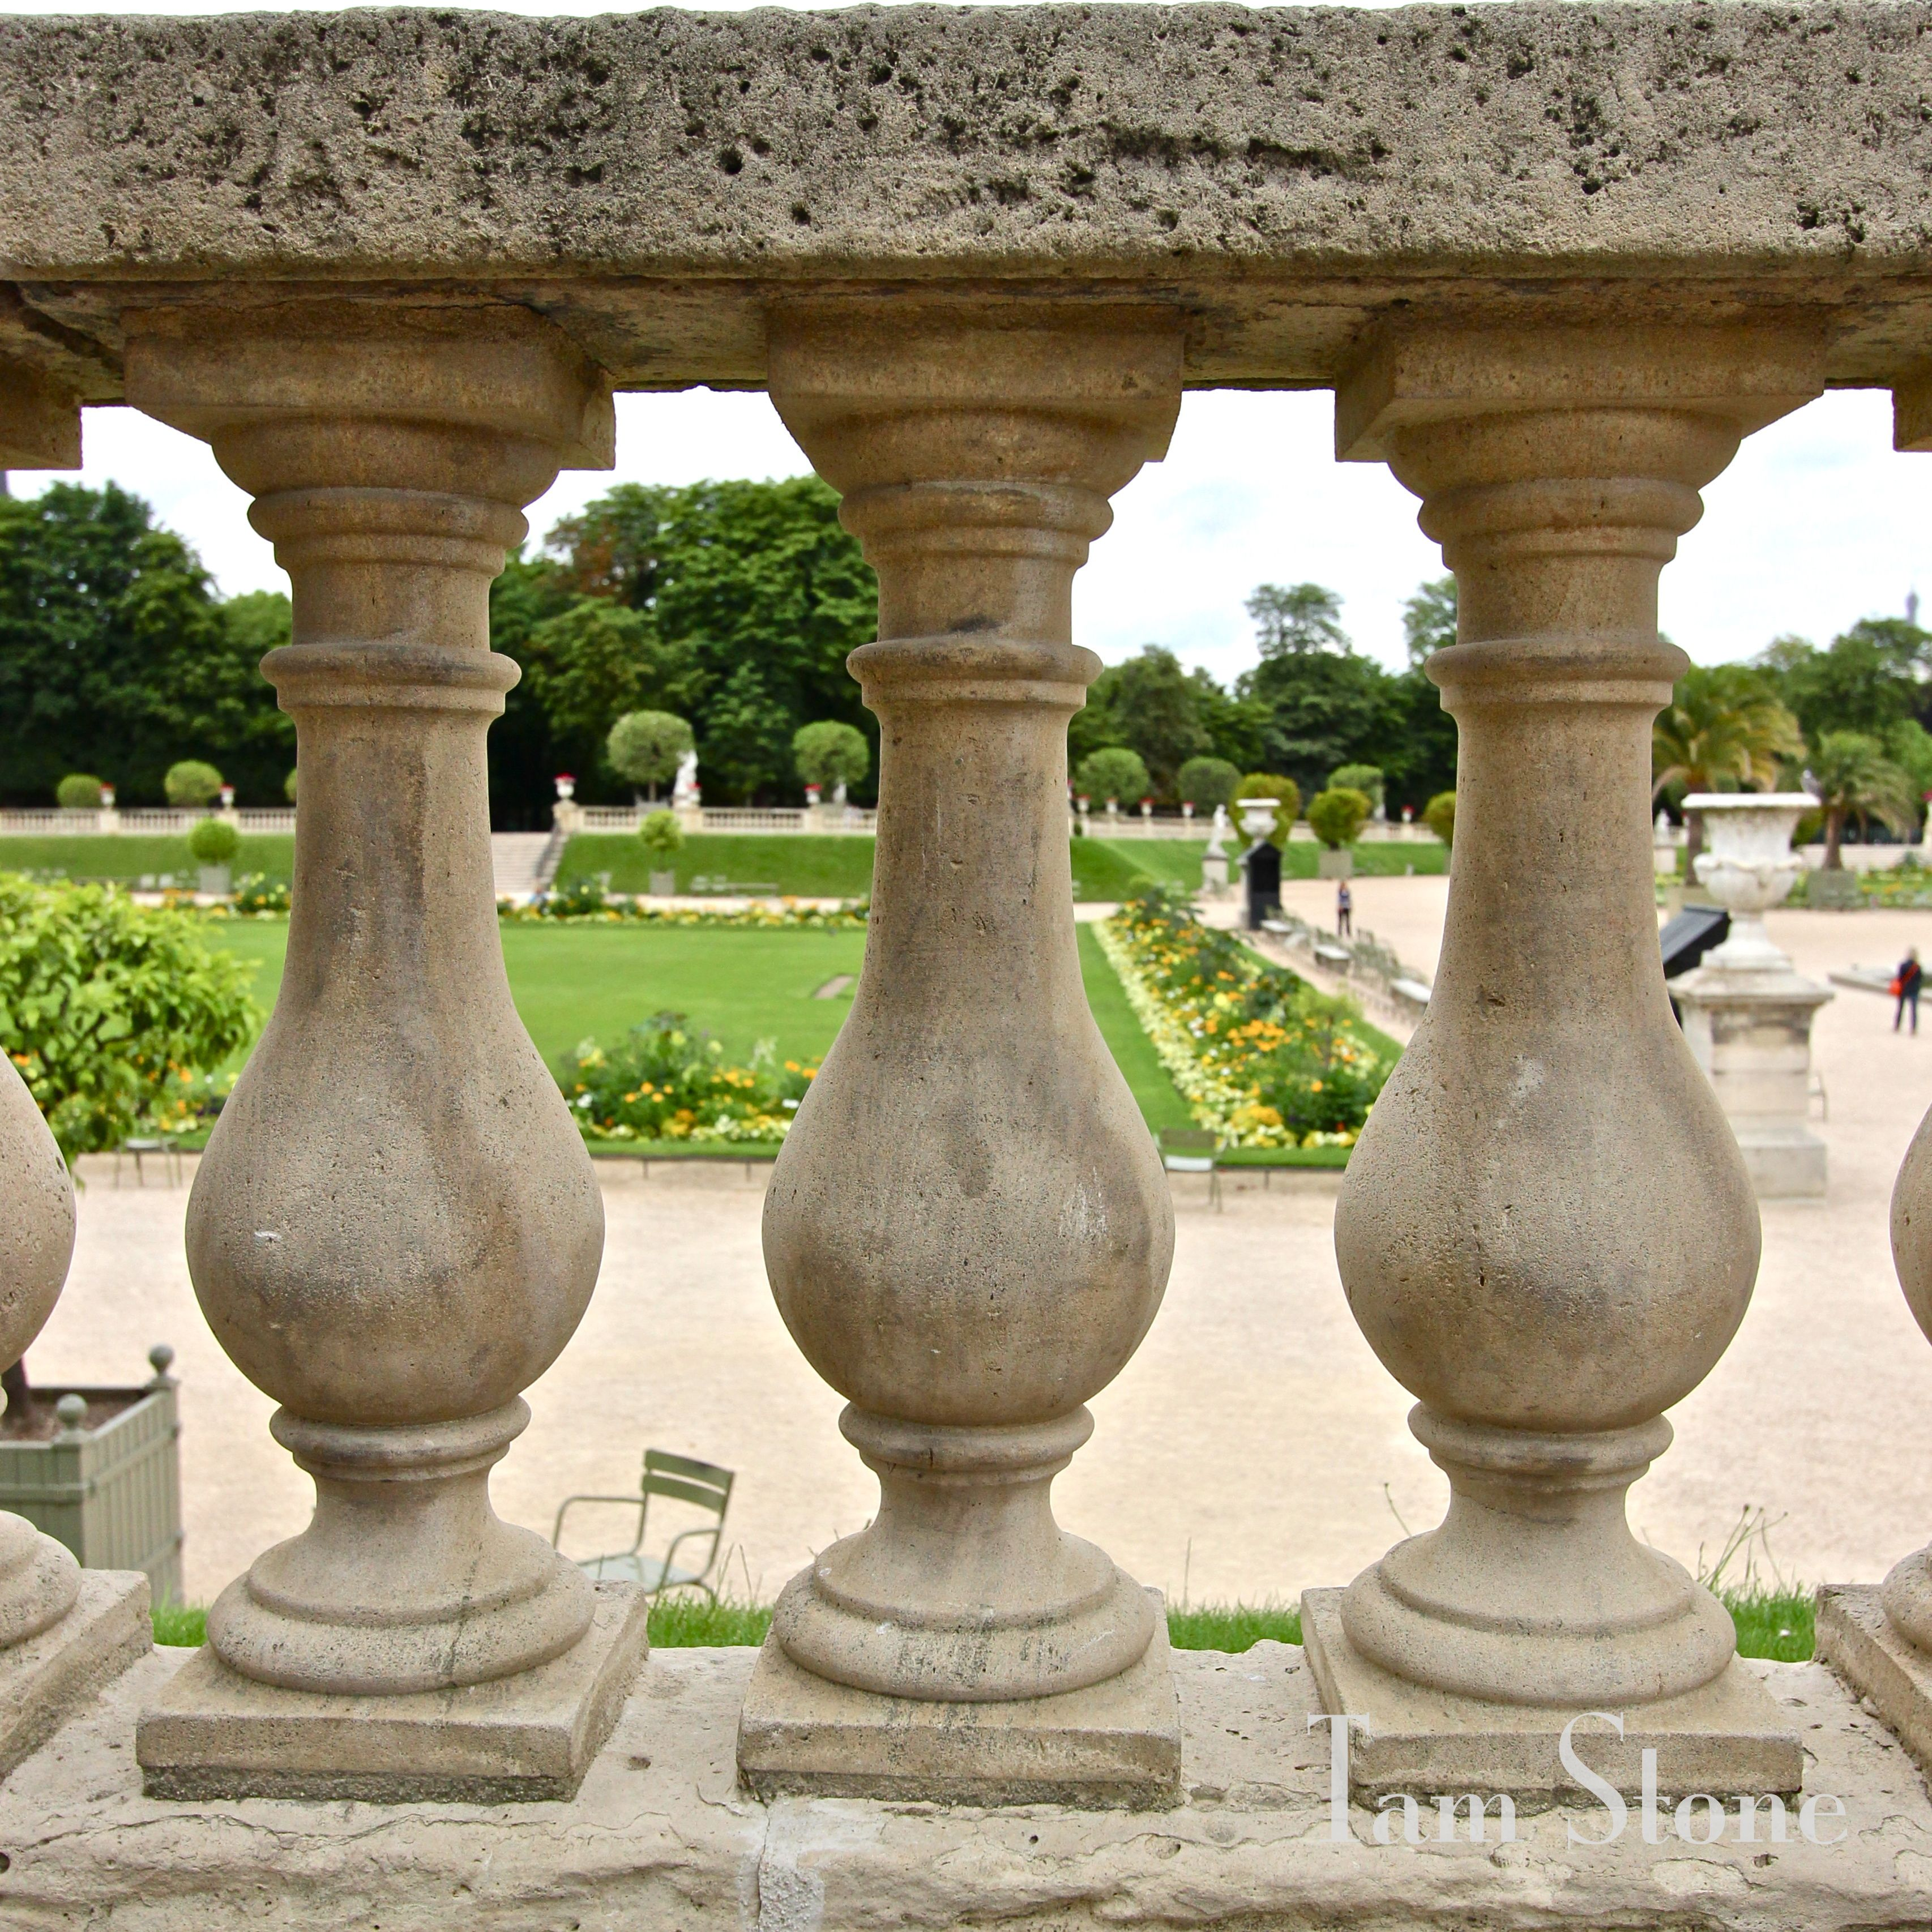 French baroque jardin du luxembourg paris france c for Baraque jardin